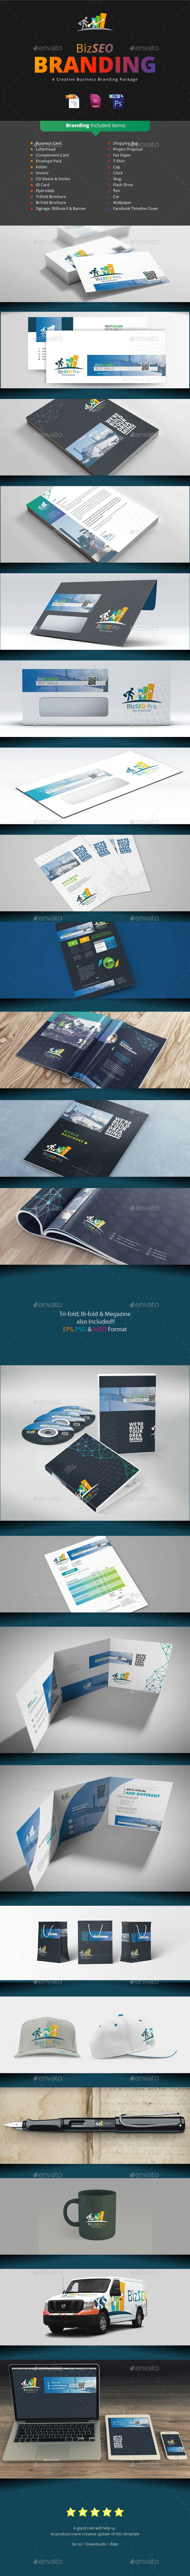 Pin by Michael Smith on Corporate Stationary